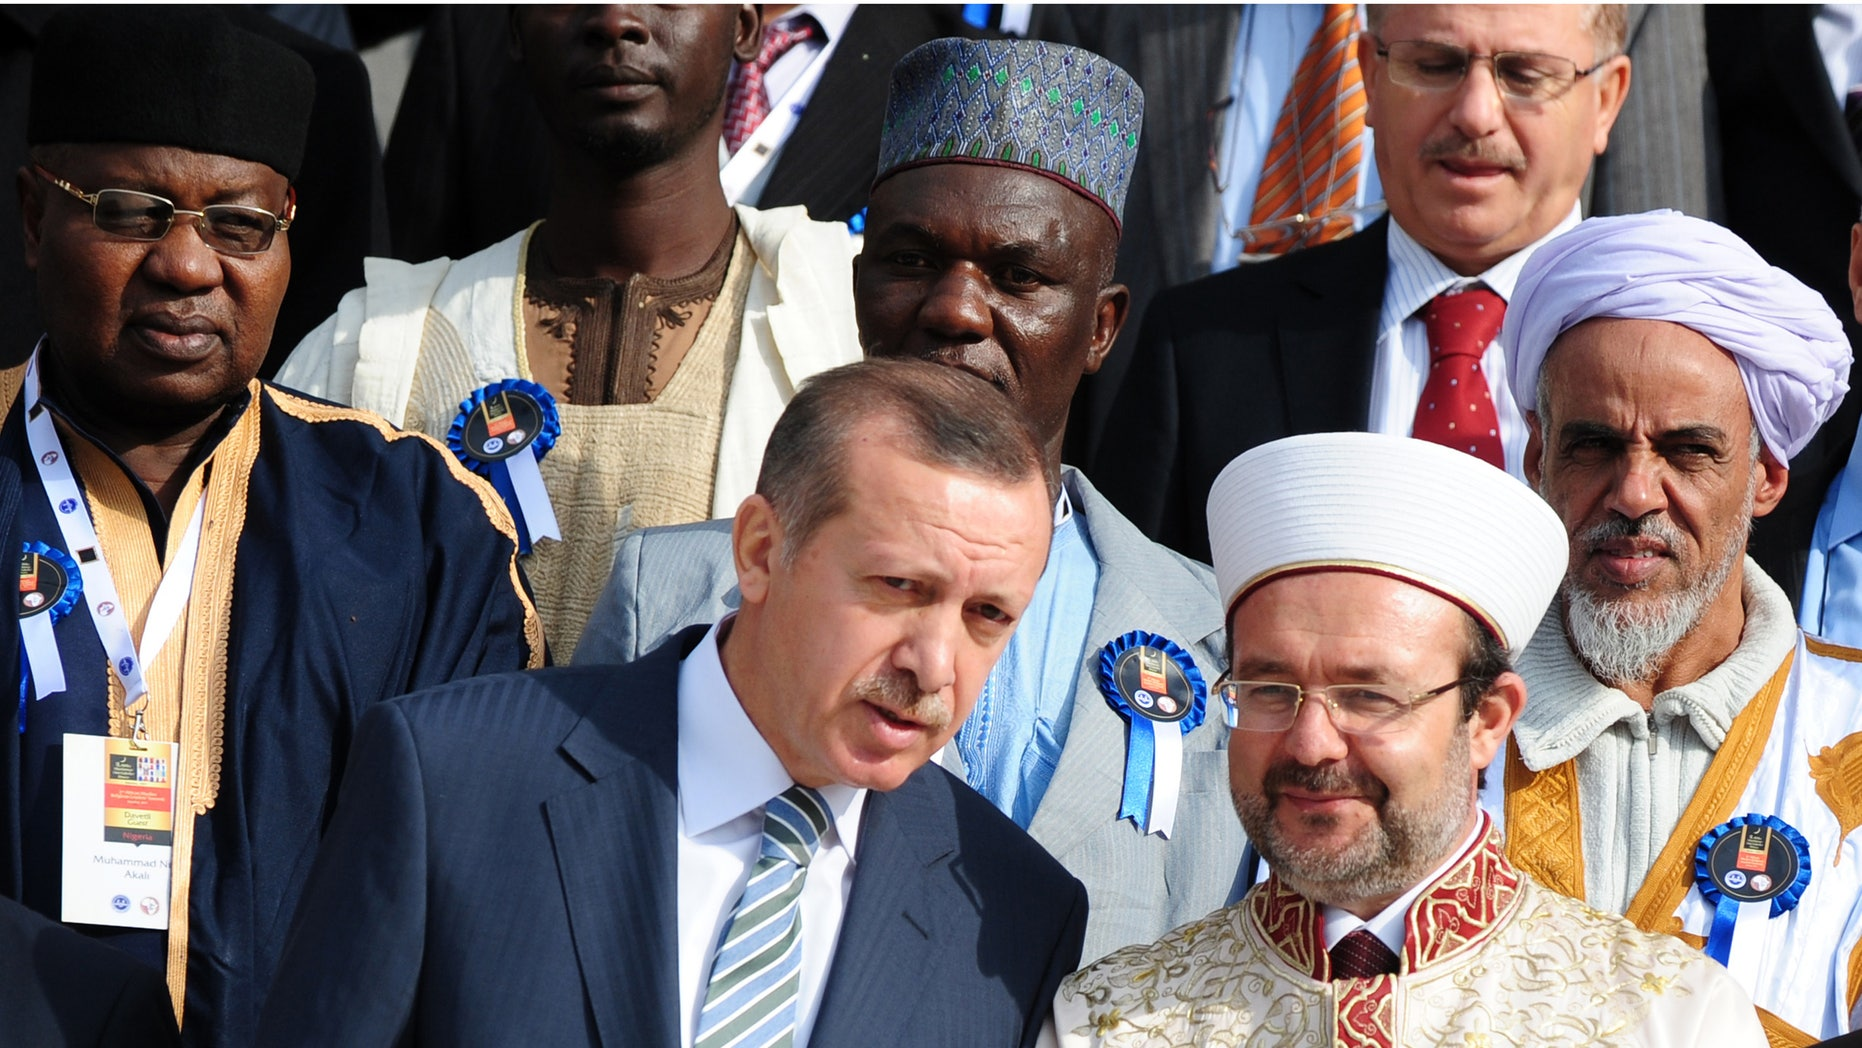 November 21: Turkish Prime Minister Recep Tayyip Erdogan, front left, speaks with Mehmet Gormez, head of Turkey's Religious Affairs Directorate, after a meeting with African Muslim religious leaders in Istanbul, Turkey.